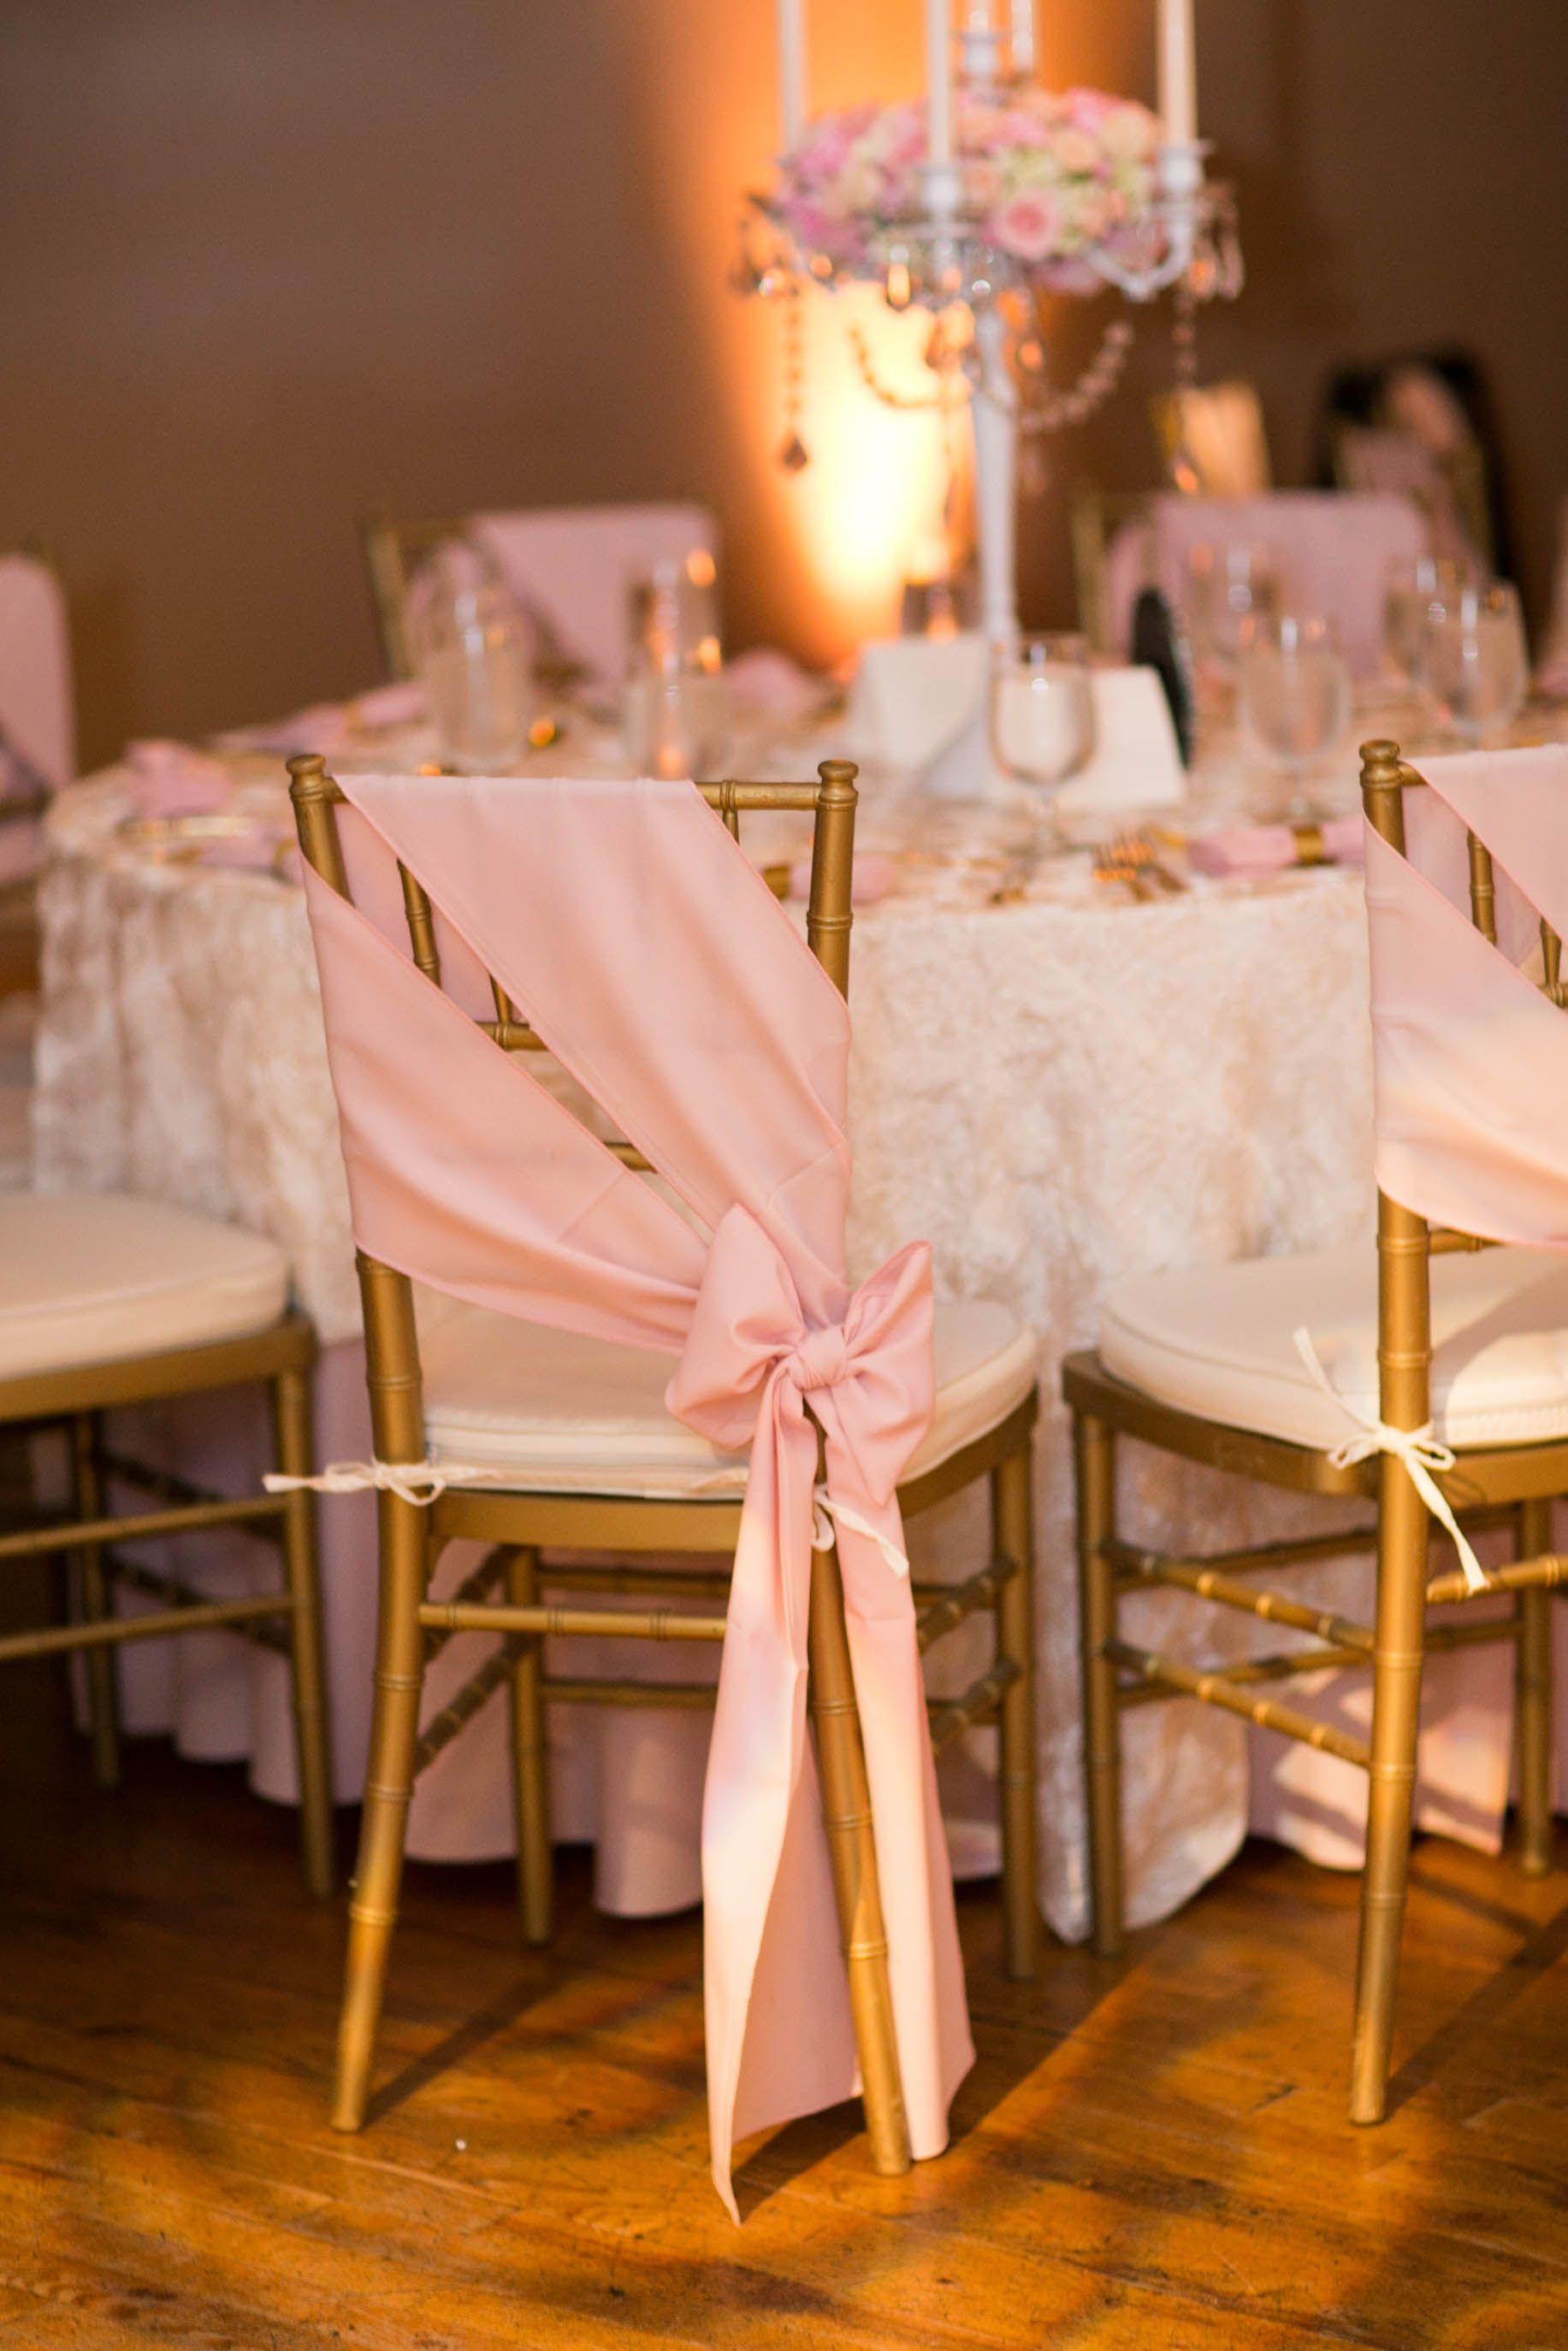 ... on gold chivari chairs Brocade Event Design - Nashville-Weddings -Avenue-Pink-Downtown-Nashville-Reception-gold-chaivari-pink-chair-sash-tall-crystal- ... & Brocade Event Design - Nashville-Weddings-Avenue-Pink-Downtown ...